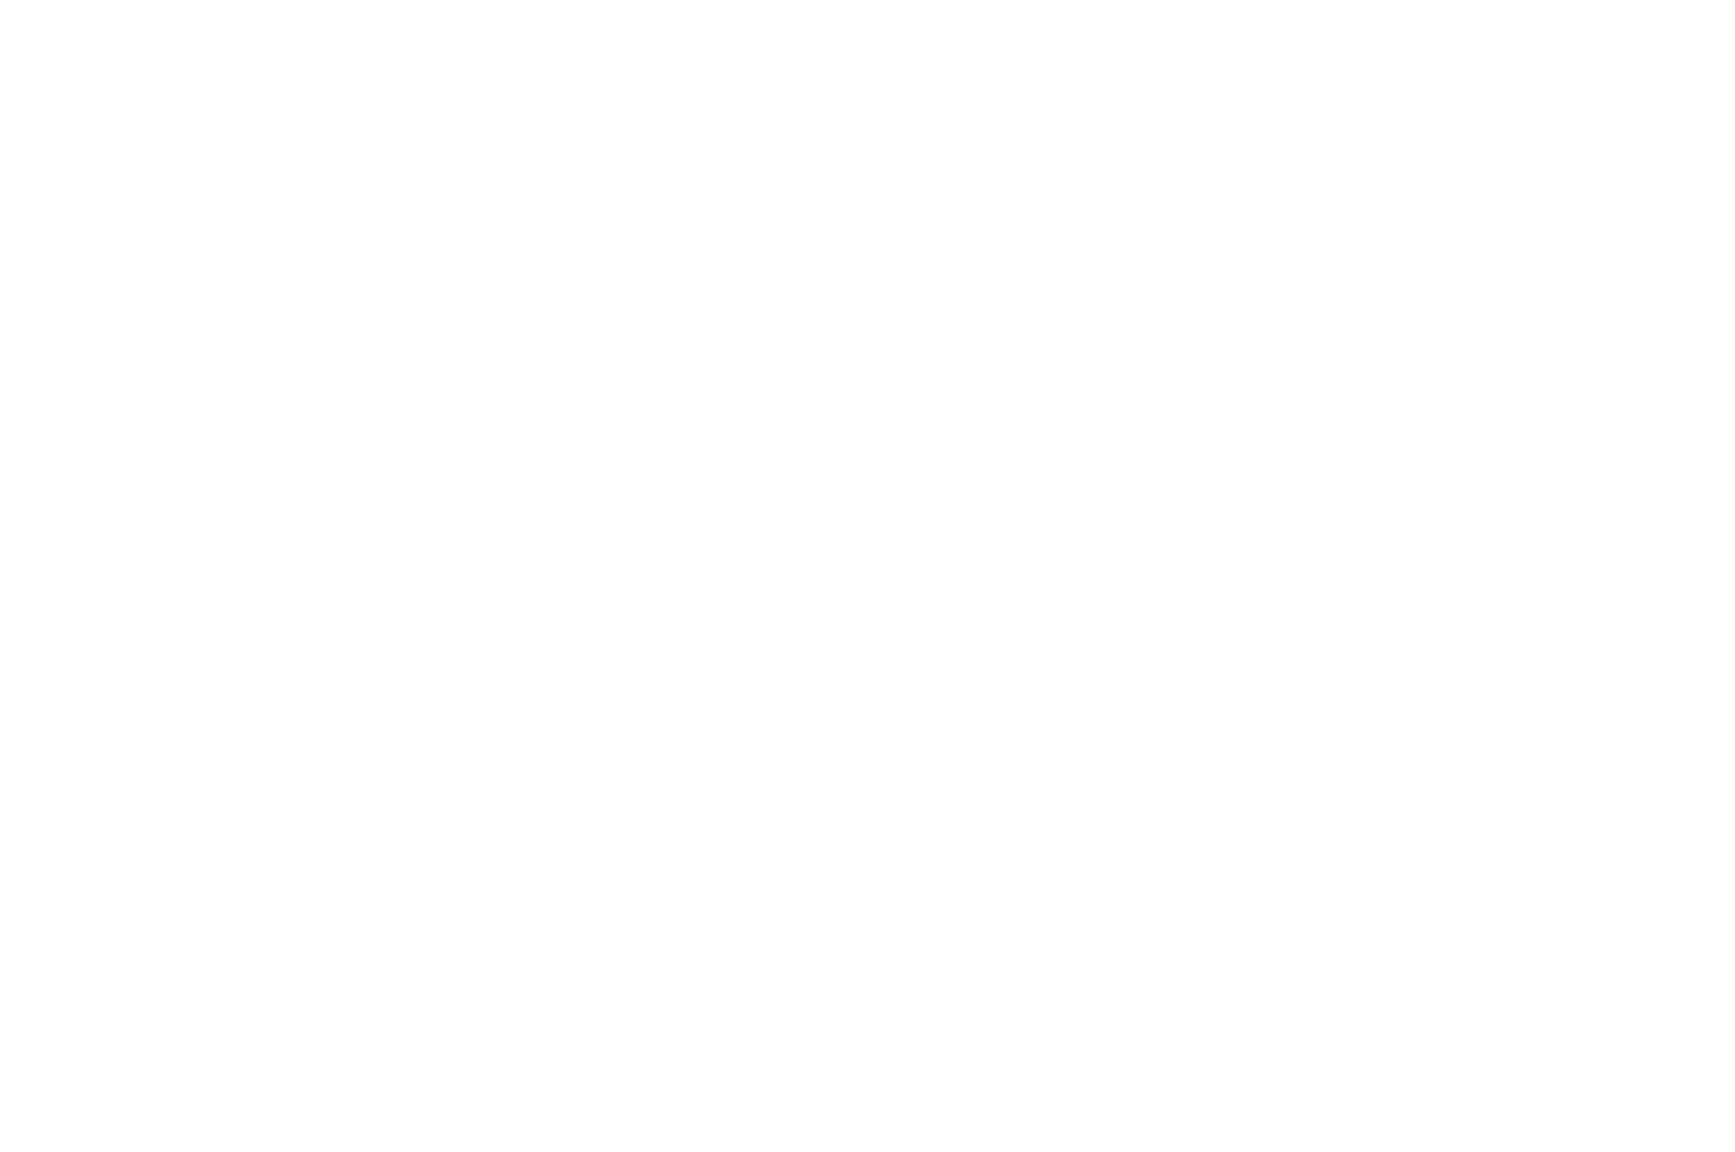 OFFICIAL SELECTION - BEST POSTER - Action on Film MegaFest 16th17th Annual Film Festival and Writers Competition 20202021 - 2021-1